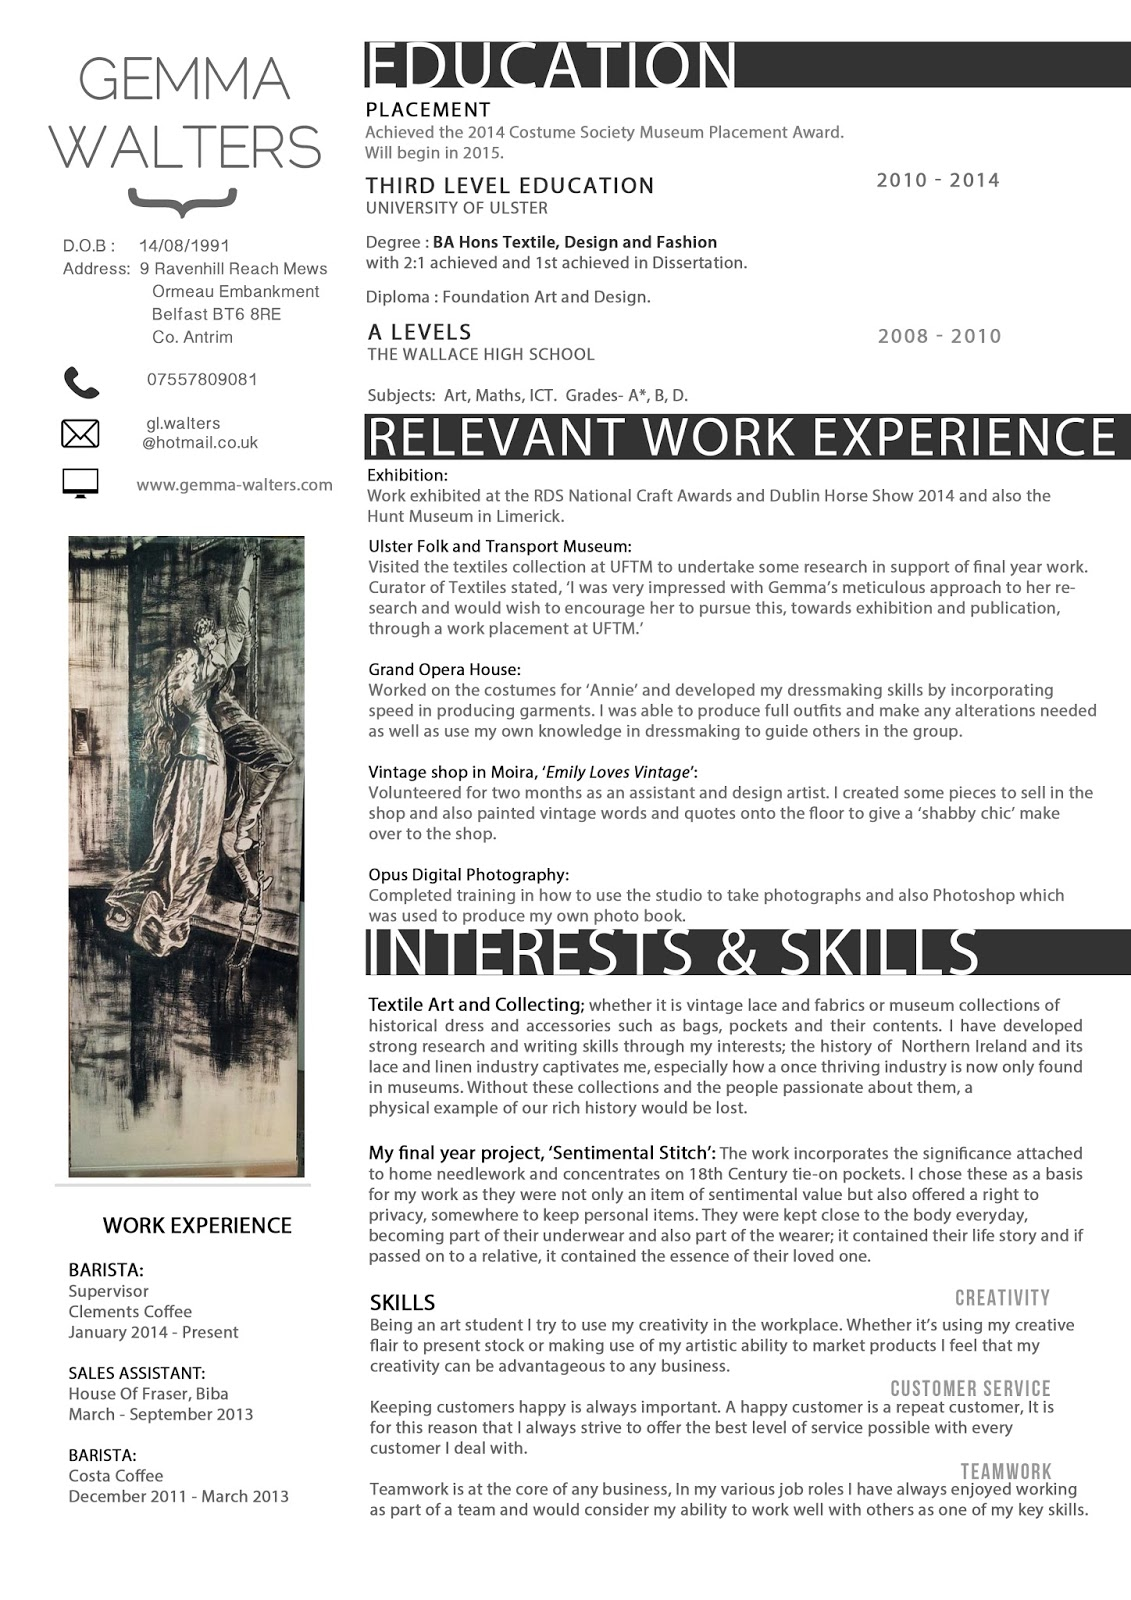 sample resume for web designer experienced possessions sample resume for web designer experienced possessions - Web Designer Resume Samples